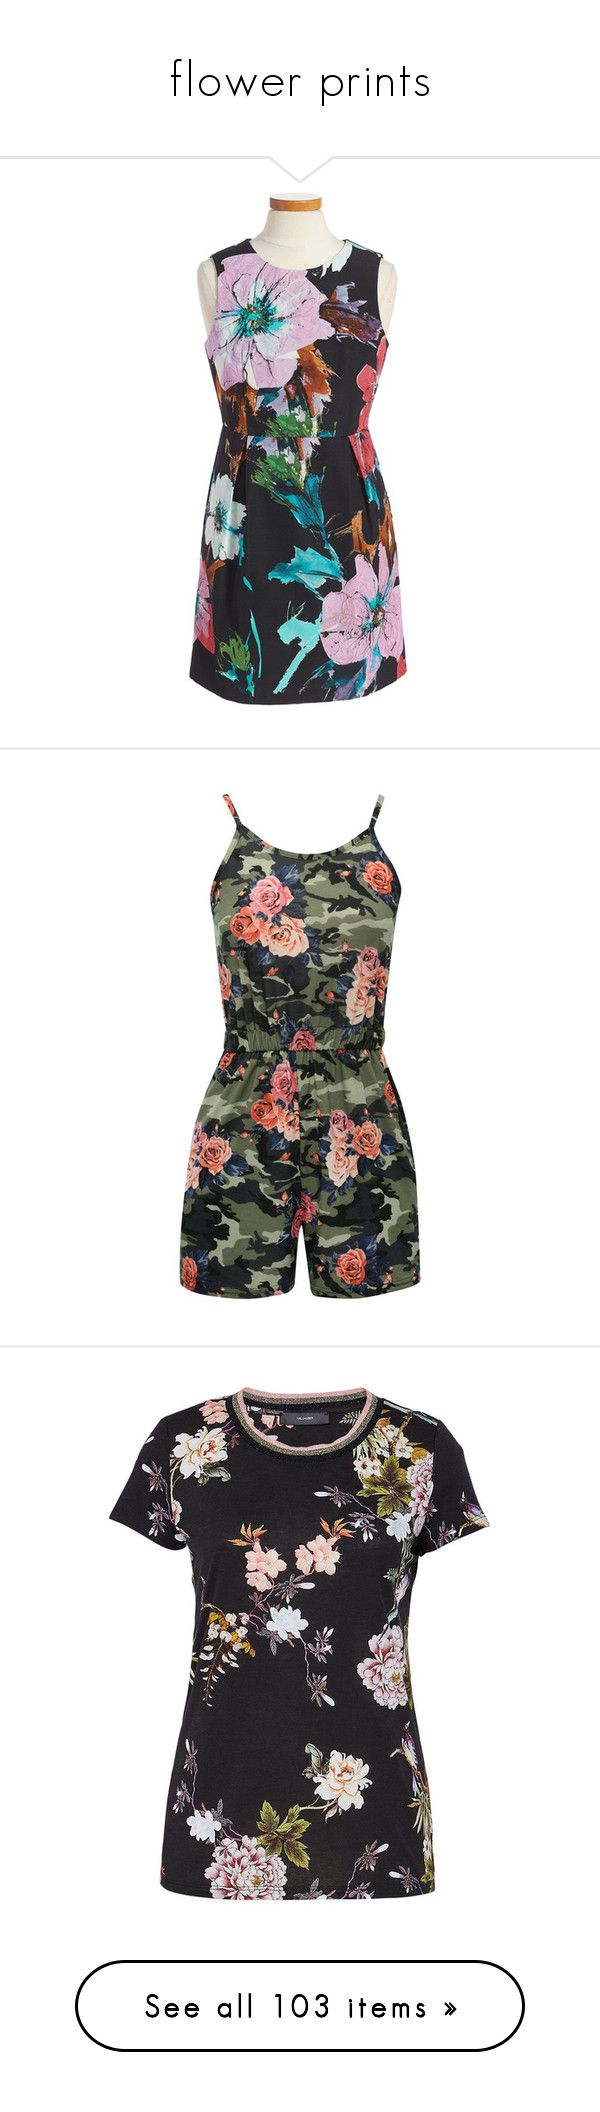 """flower prints"" by tinkertot ❤ liked on Polyvore featuring jumpsuits, rompers, jumper, shorts, playsuit romper, spaghetti strap romper, camouflage romper, camo romper, floral romper and tops"